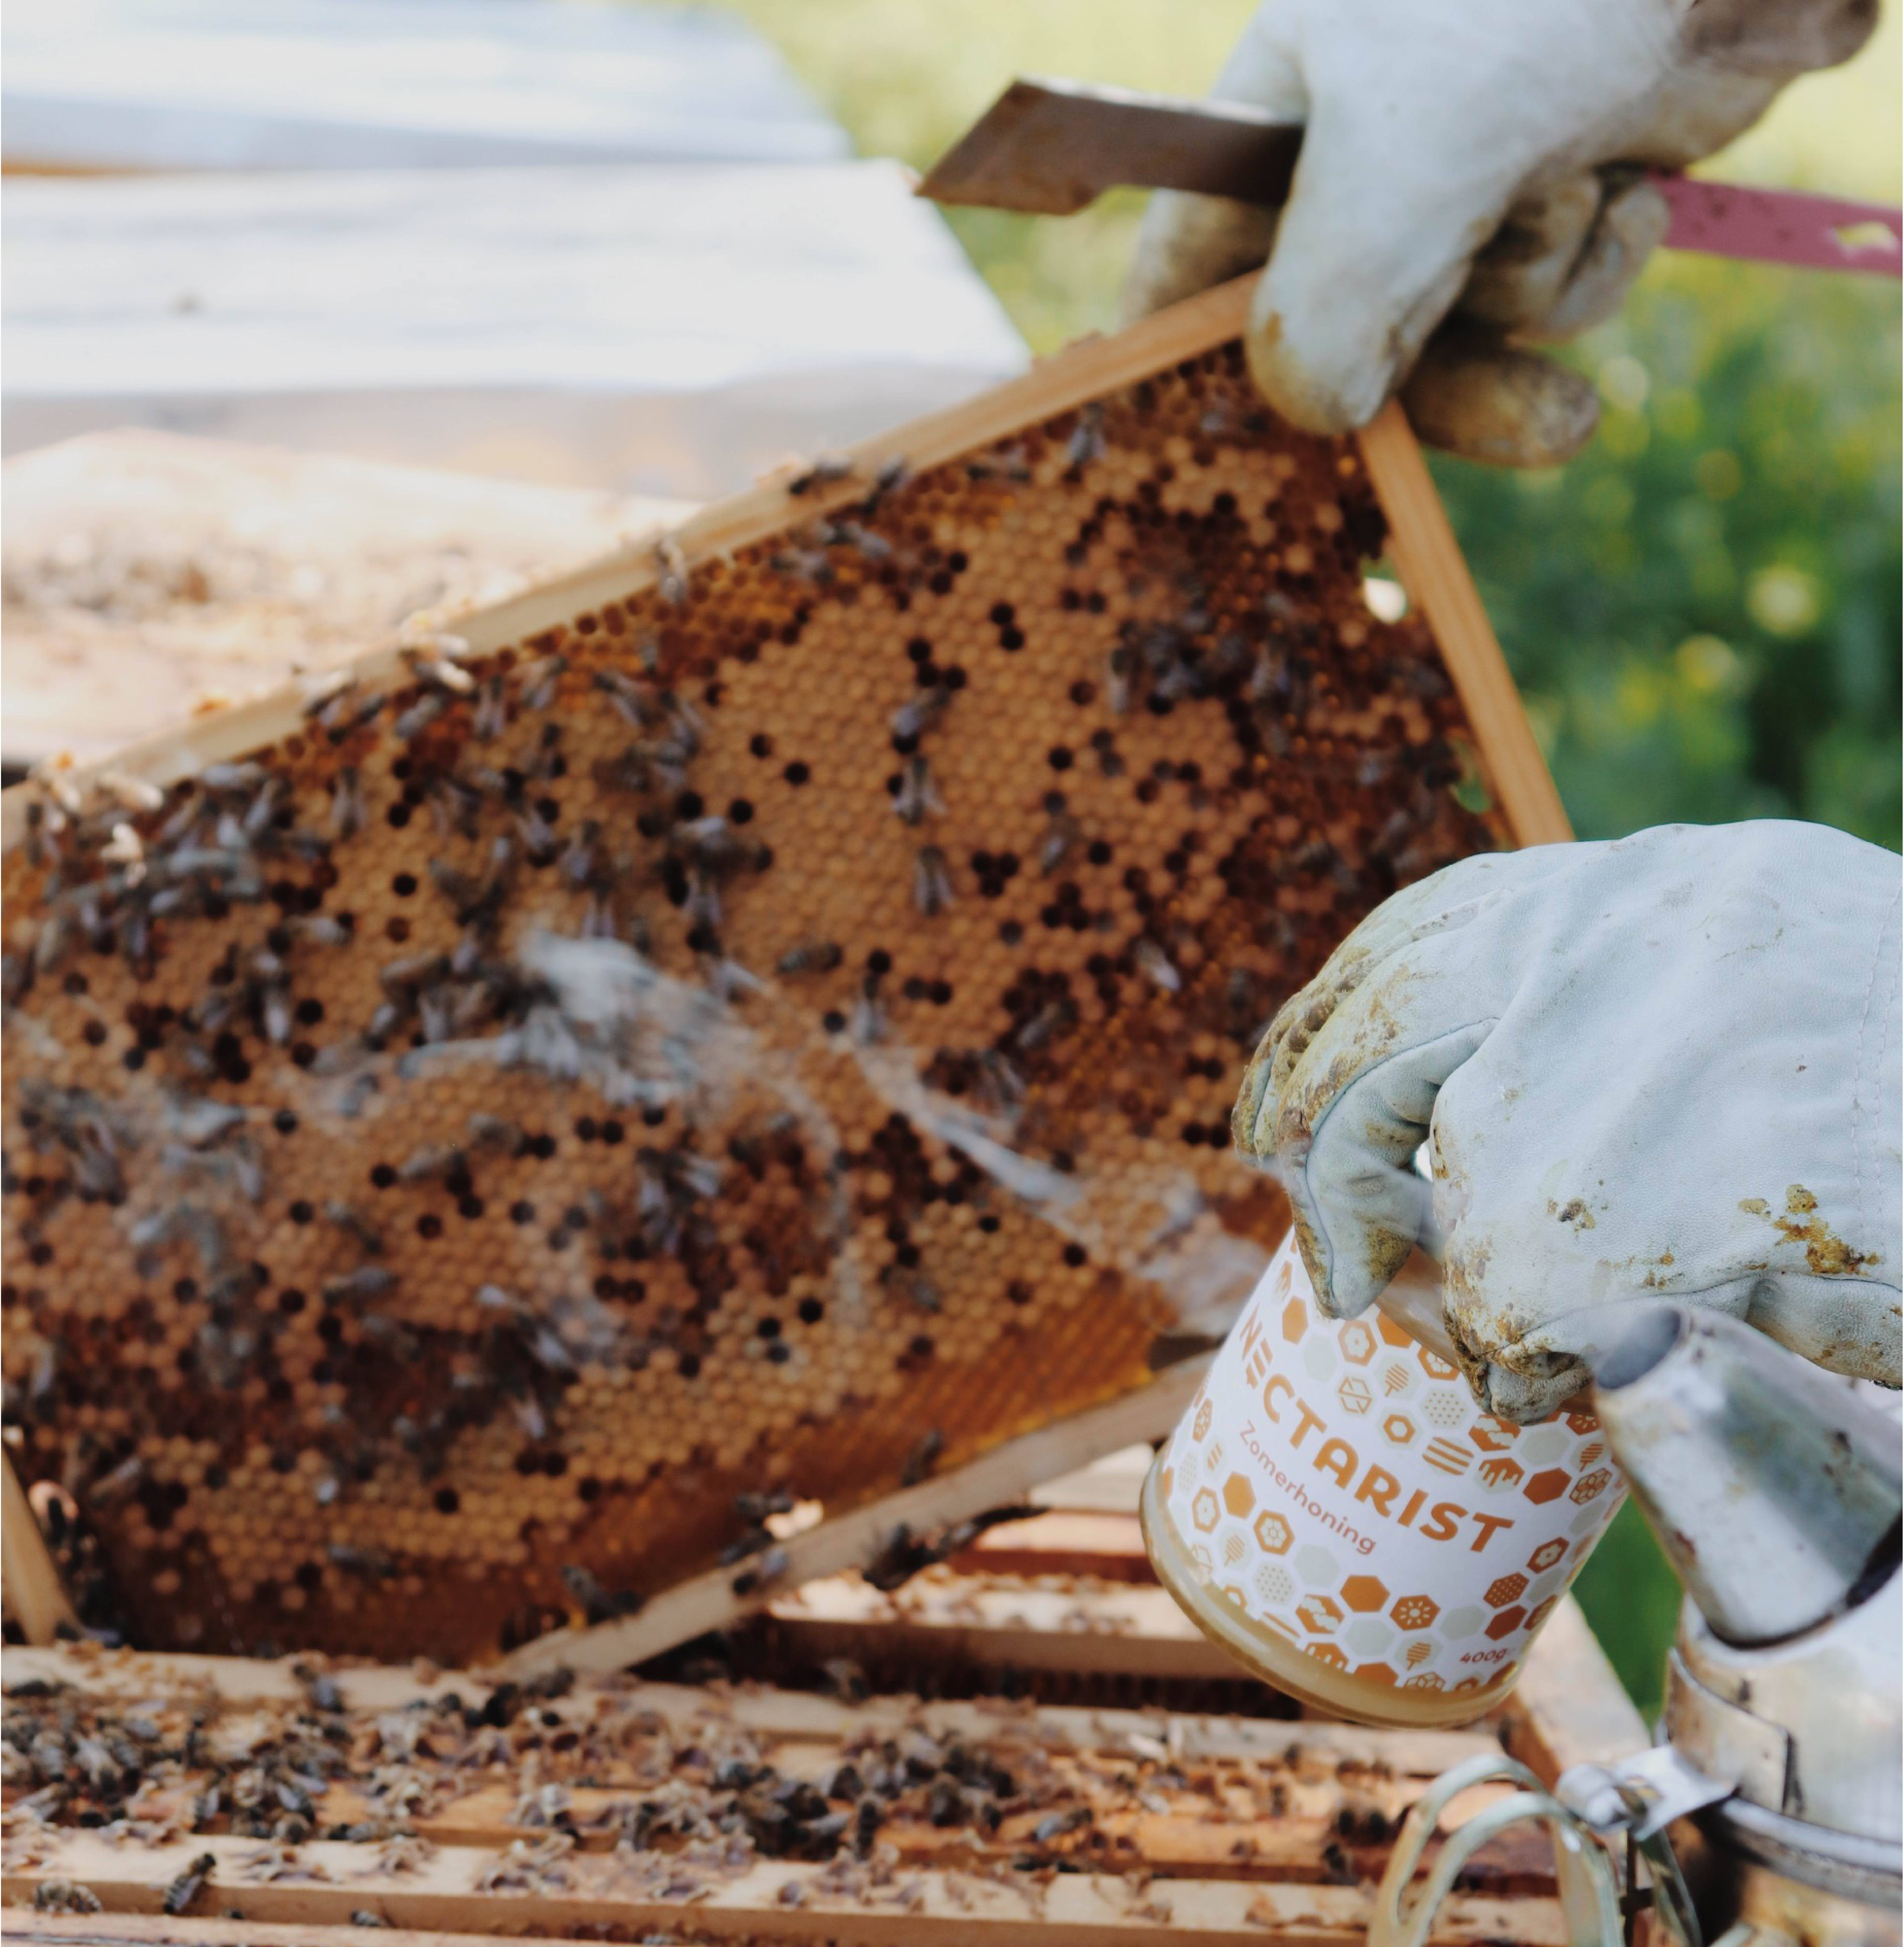 Saving Bees, Supporting Beekeepers